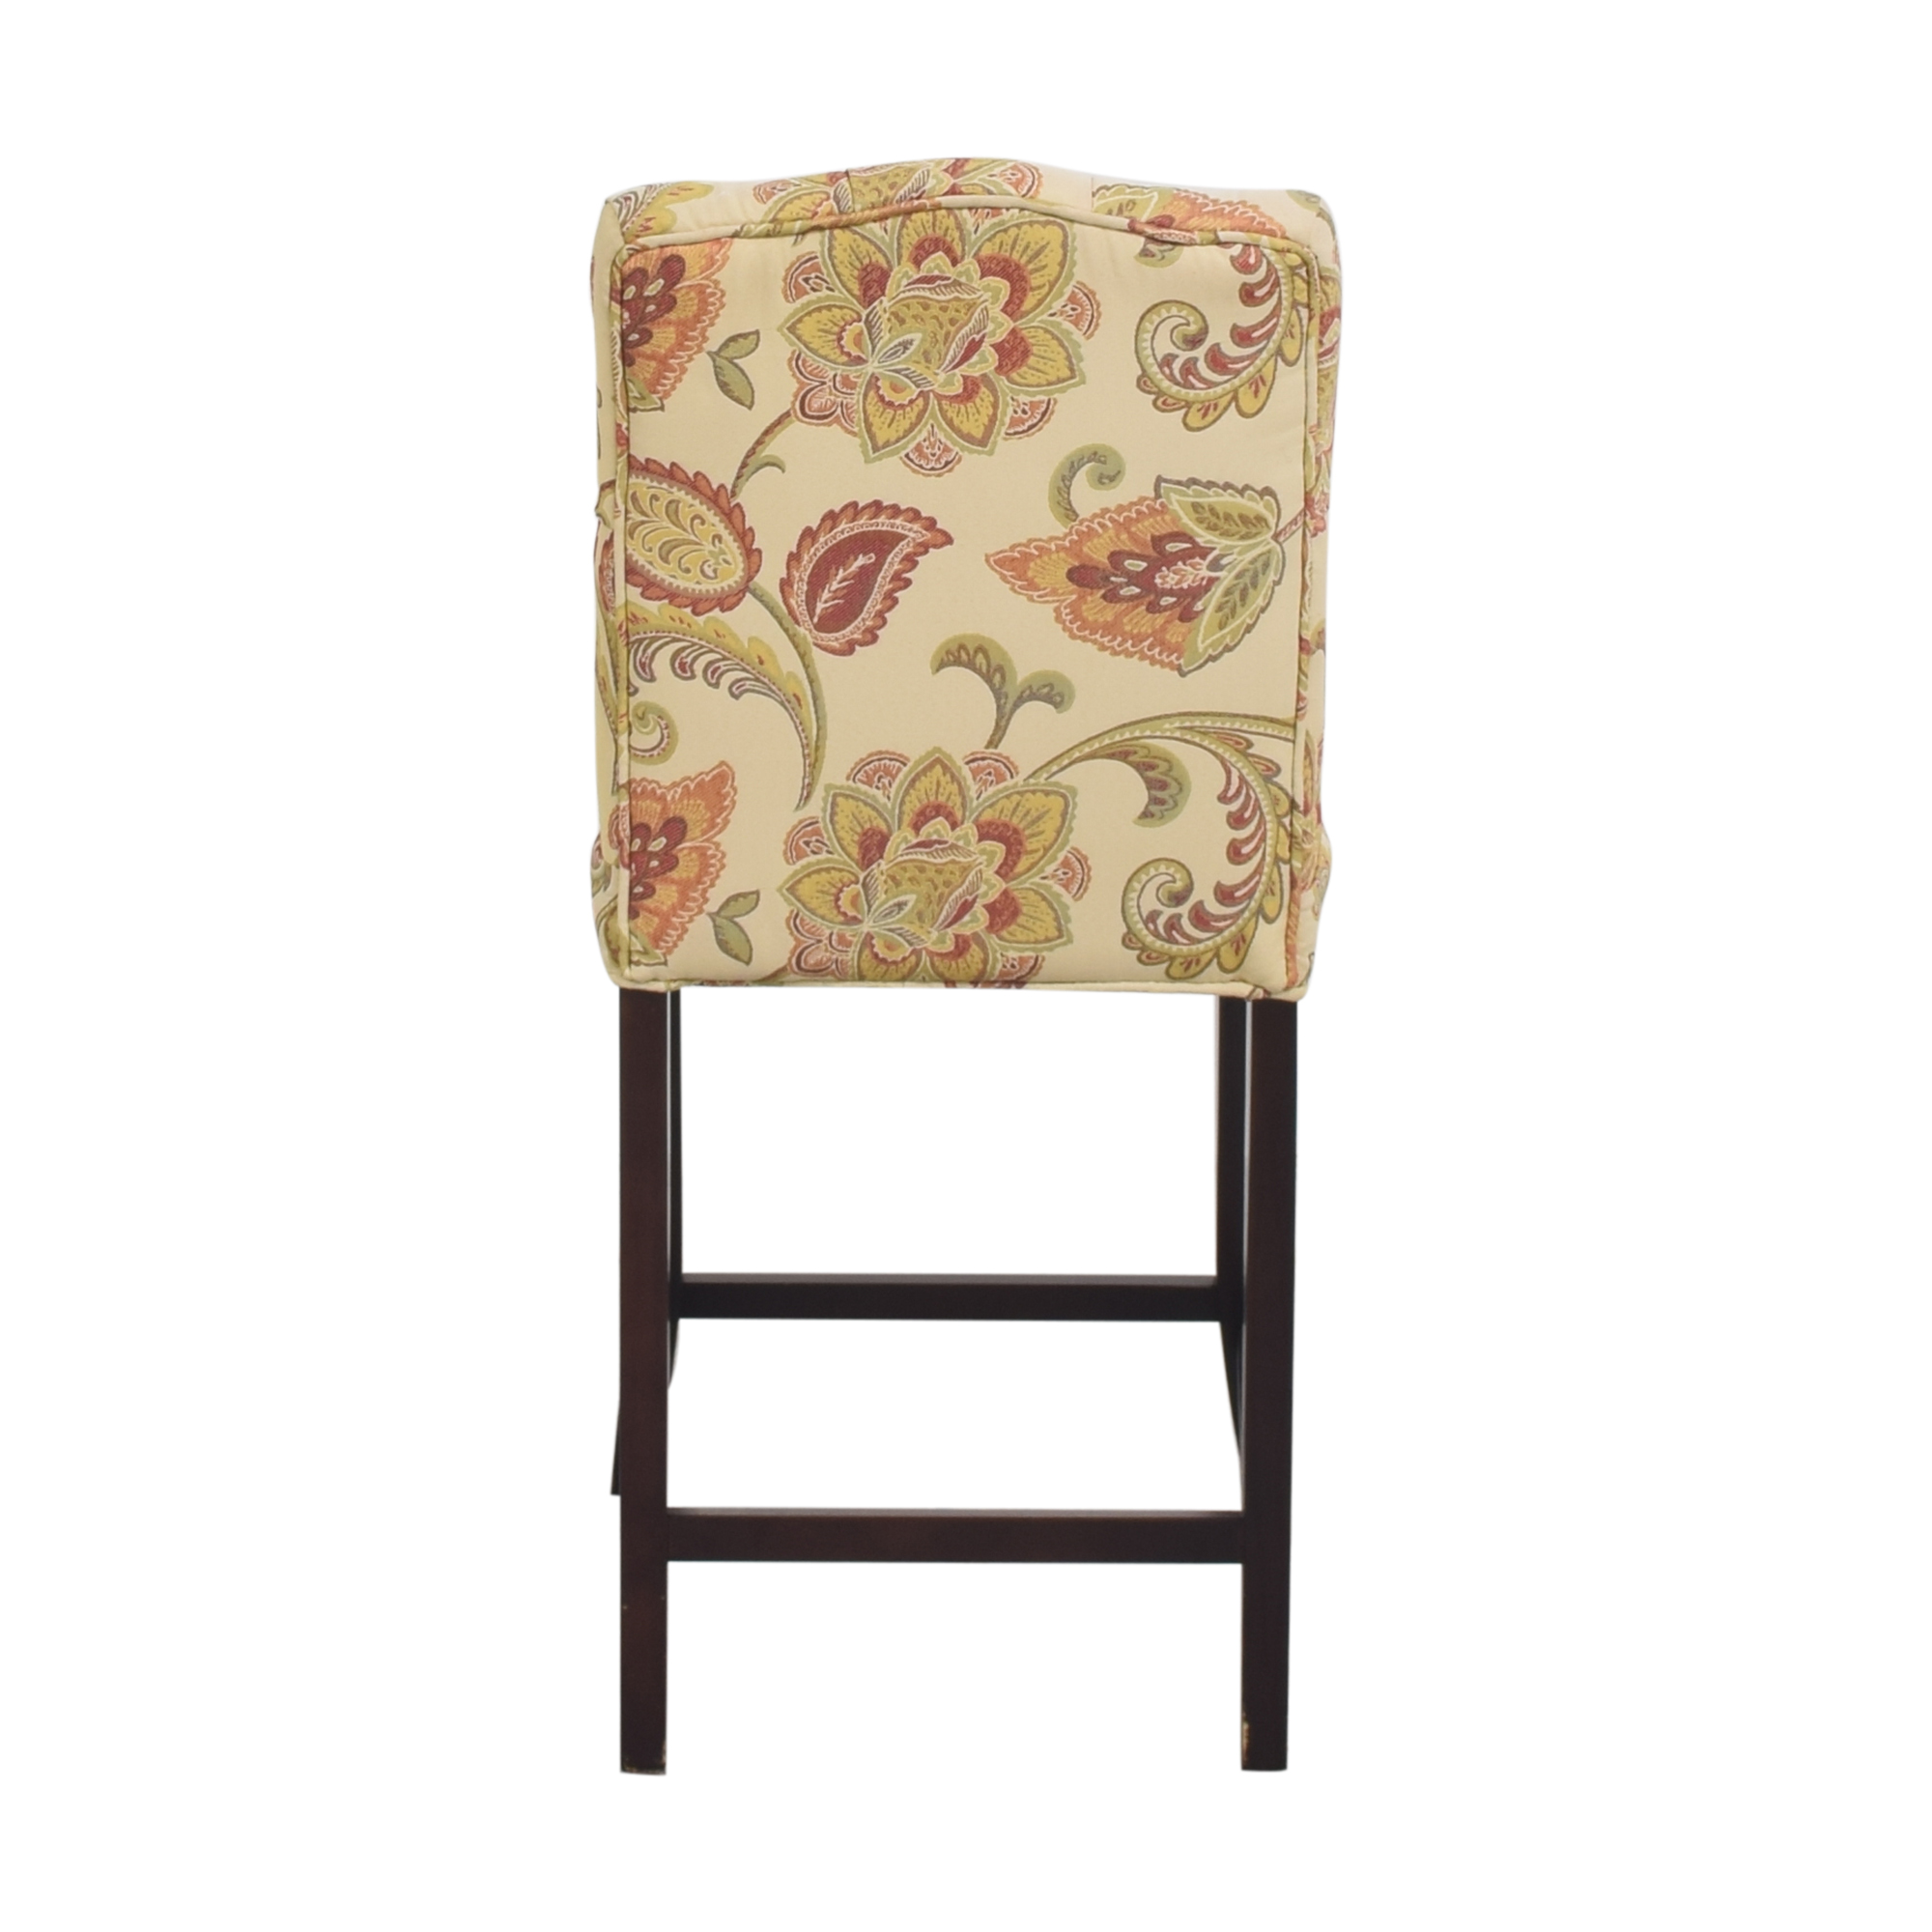 Pier 1 Pier 1 Upholstered Counter Stool discount